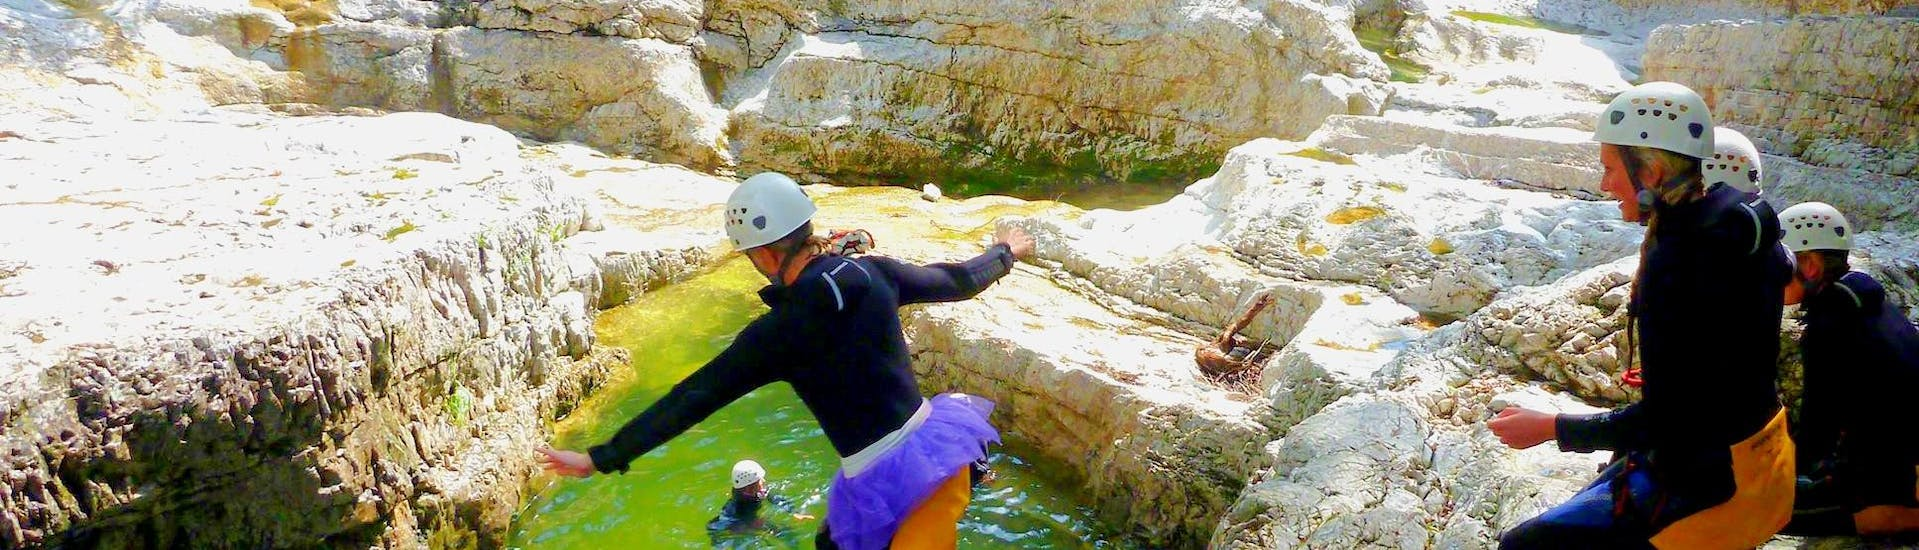 During the canyoning in the almbachklamm for bachelor parties the customers of outdoor center baumgarten is doing a big jump into the river.